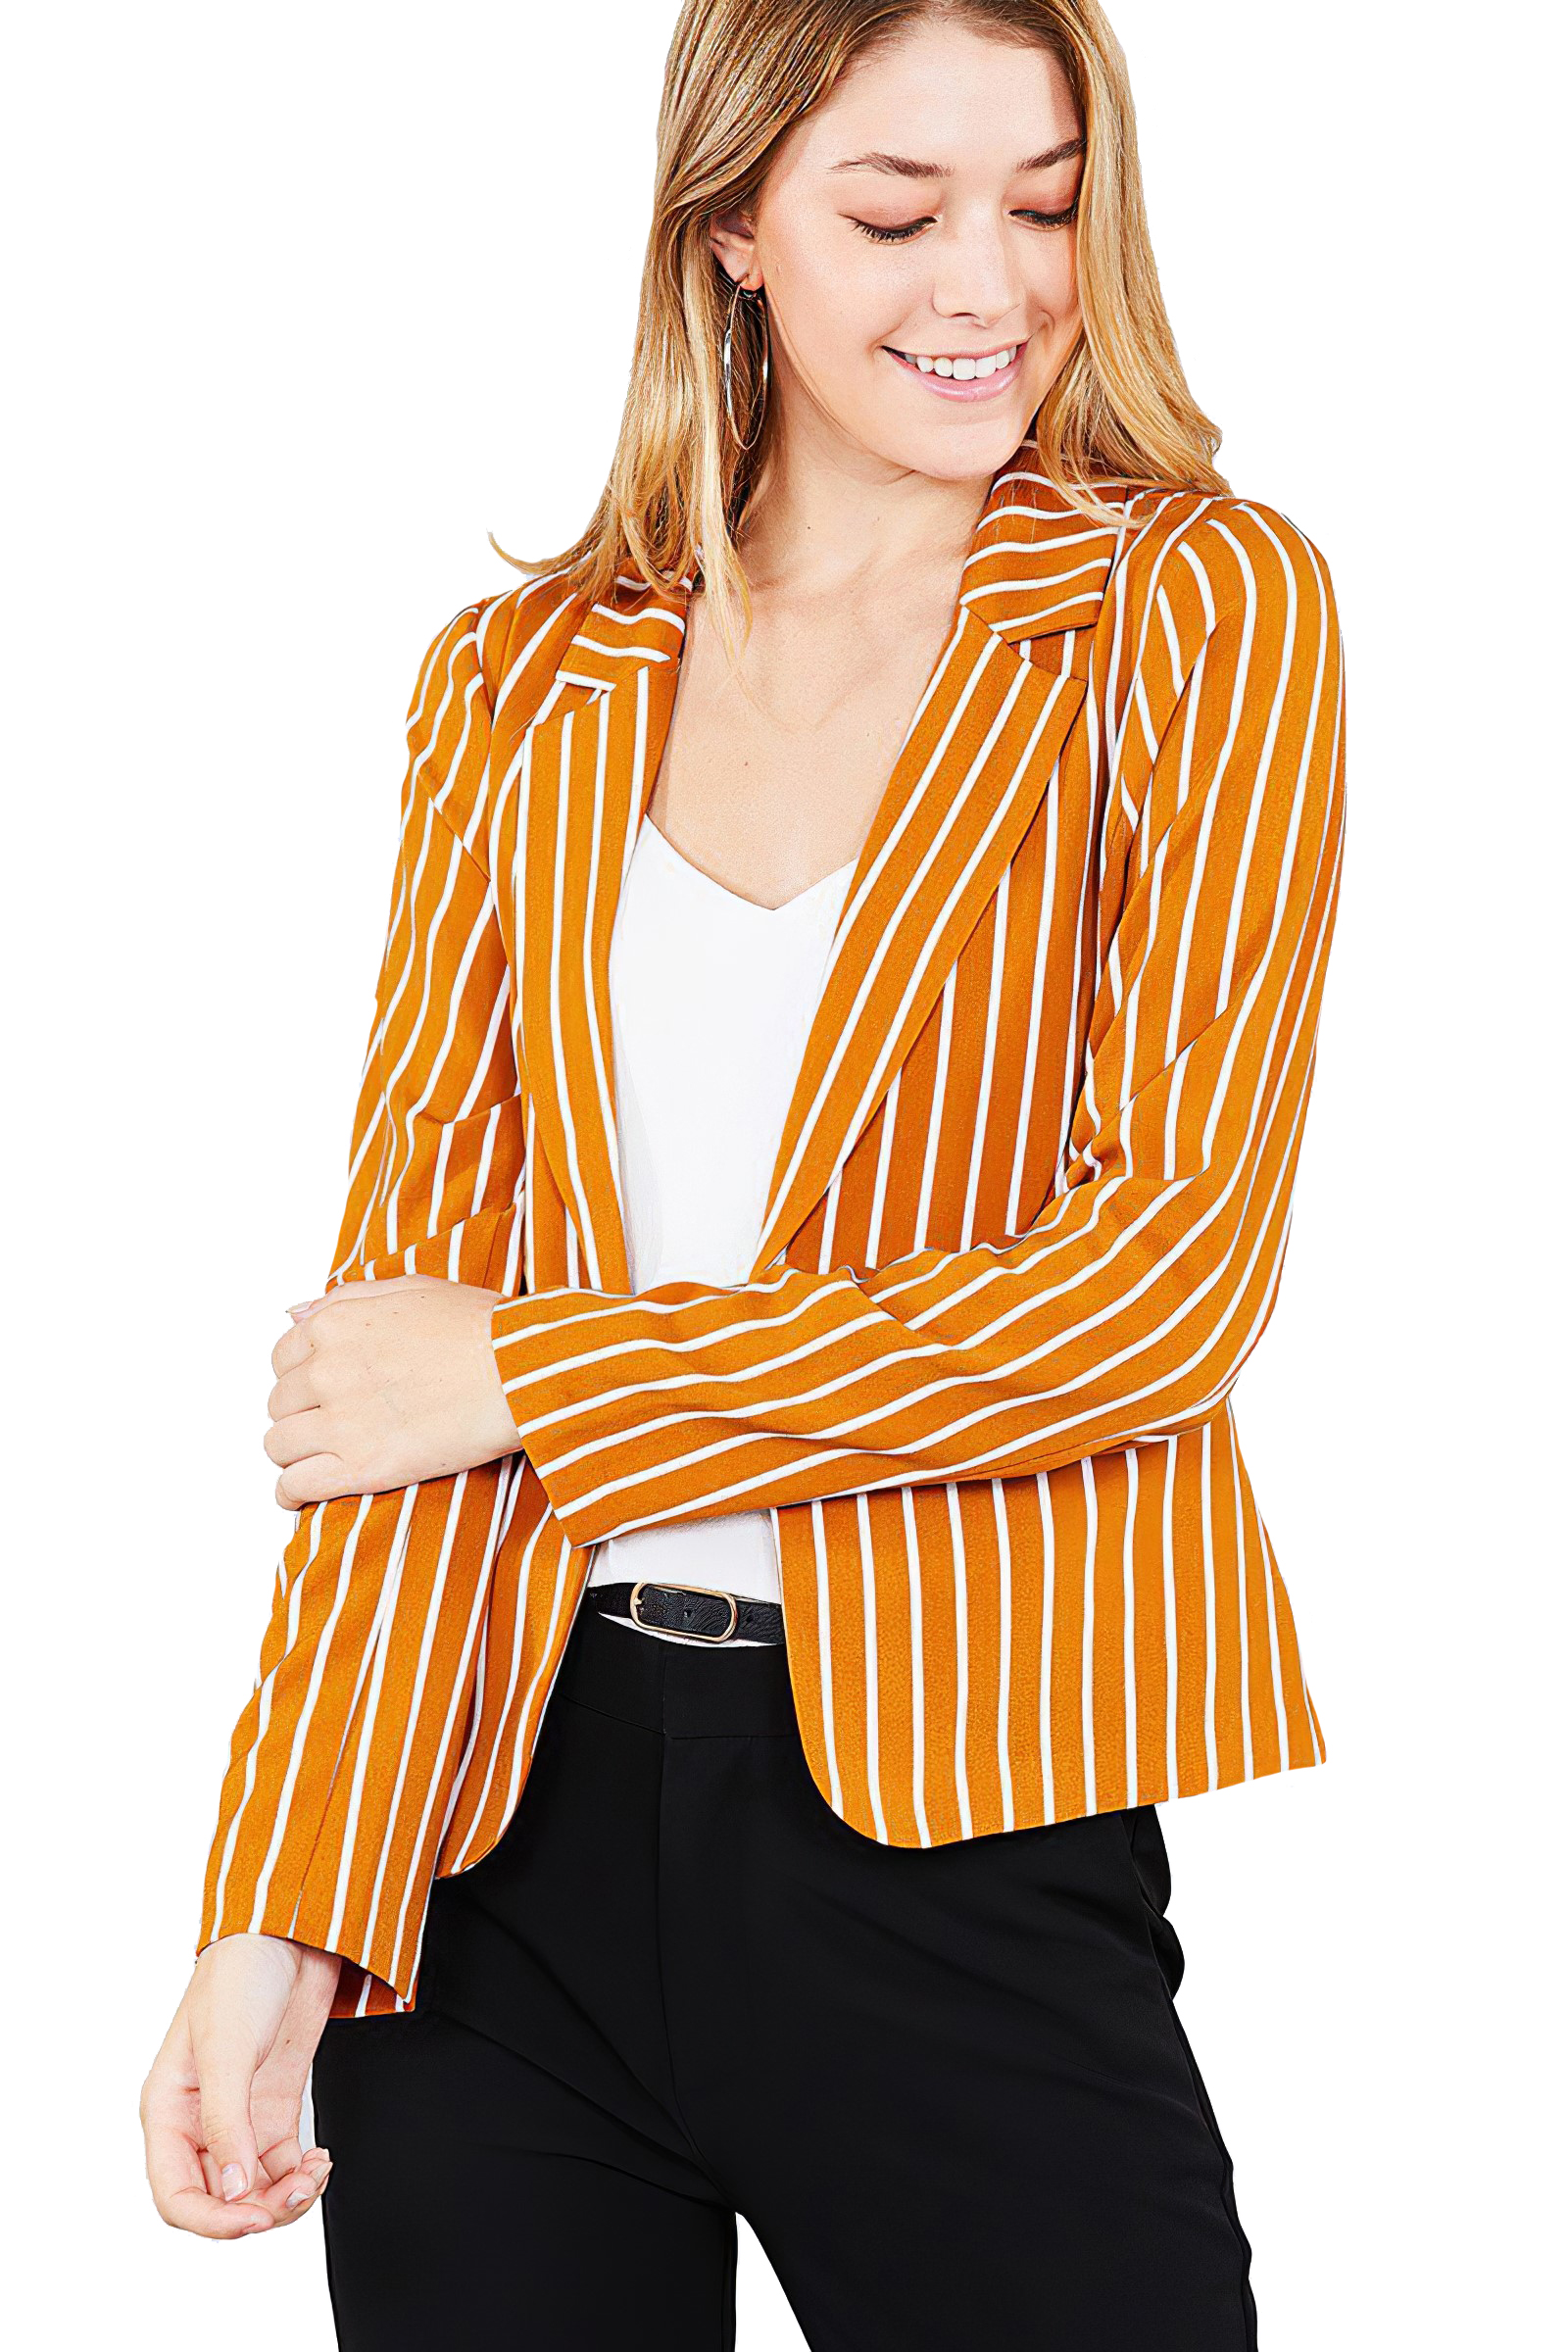 Women-039-s-Juniors-Premium-Stretch-Striped-Long-Sleeve-Jacket thumbnail 11